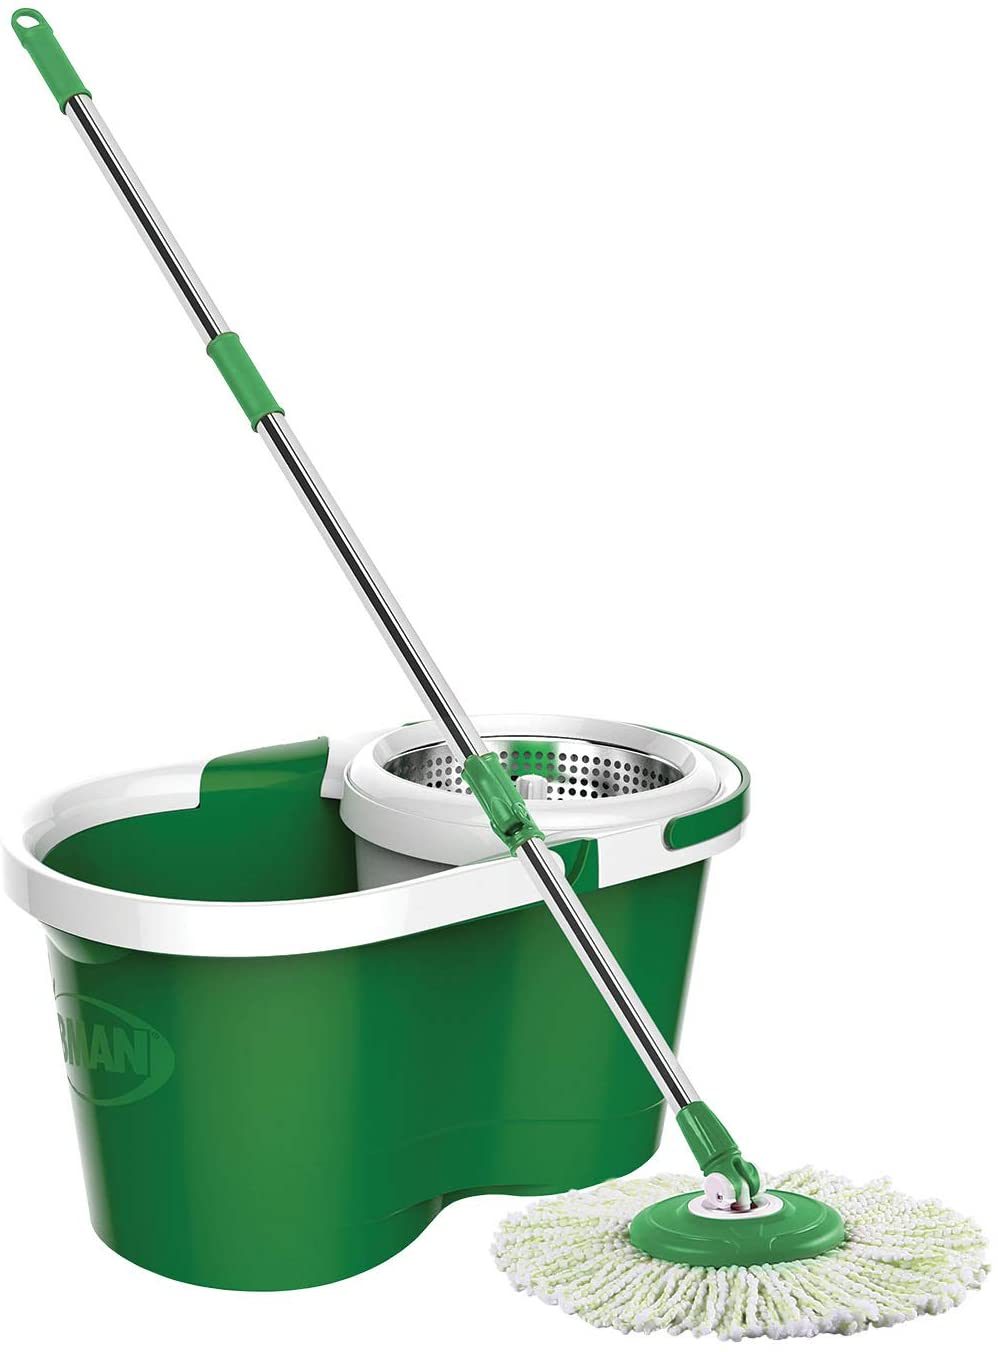 Libman Microfiber Mophead and Stainless Steel Compartment Spin Mop and Bucket